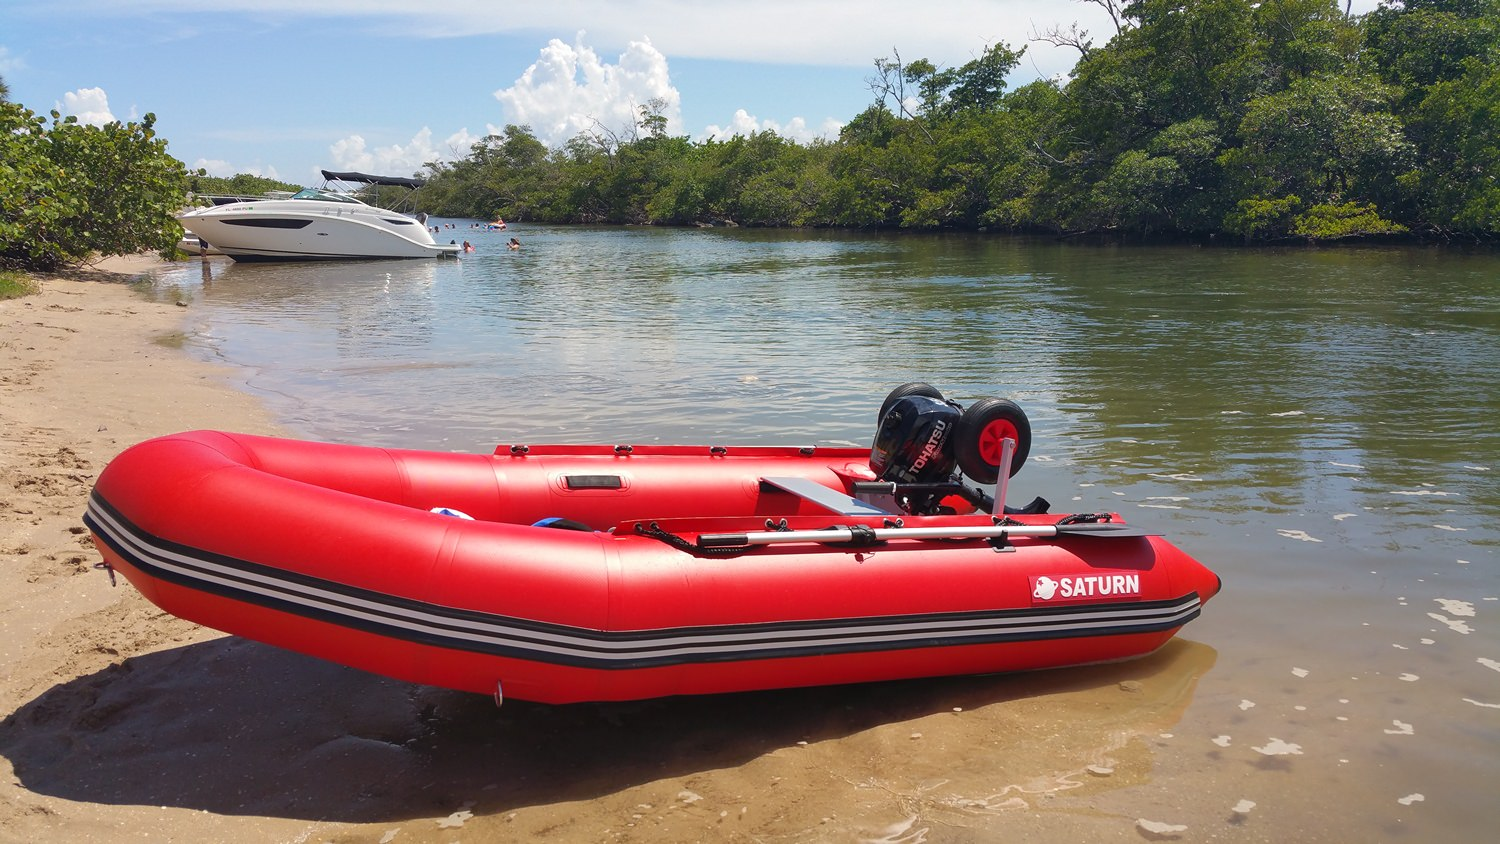 Pin Inflatable Motor Boat Inflatable Motor Boat Inflatable Boat on ...